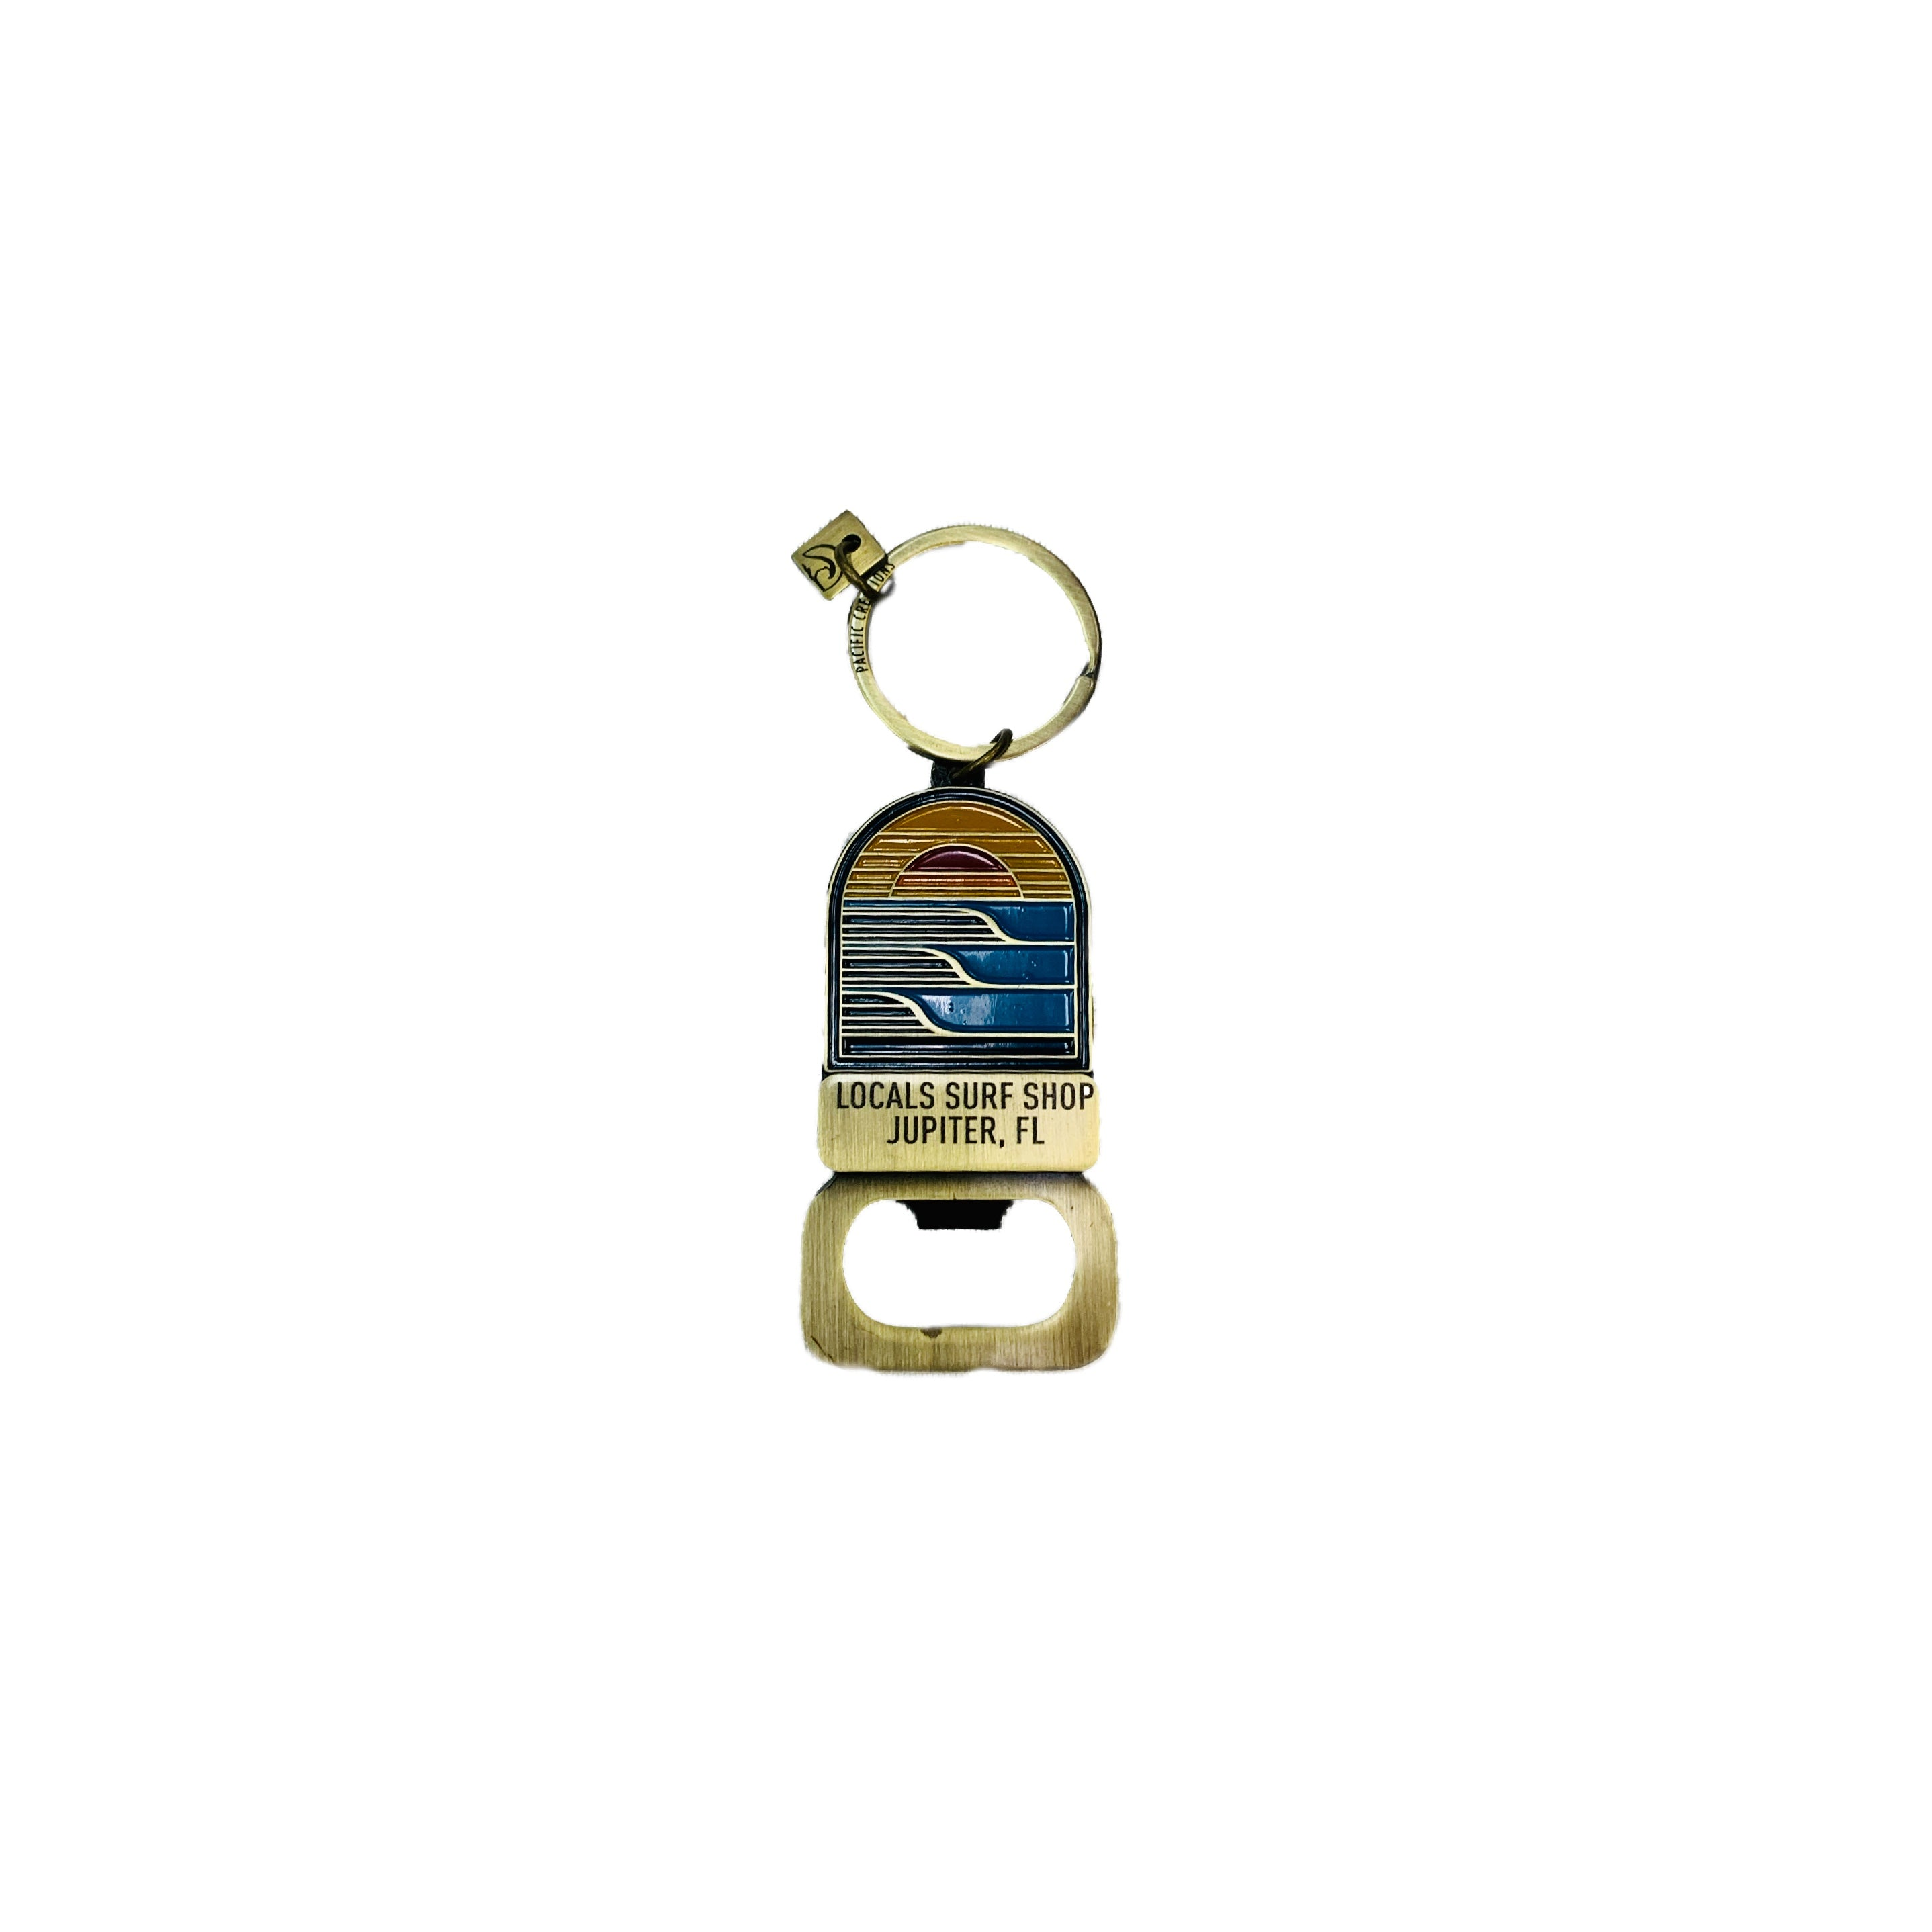 LOCALS SURF FORMATION KEY CHAIN